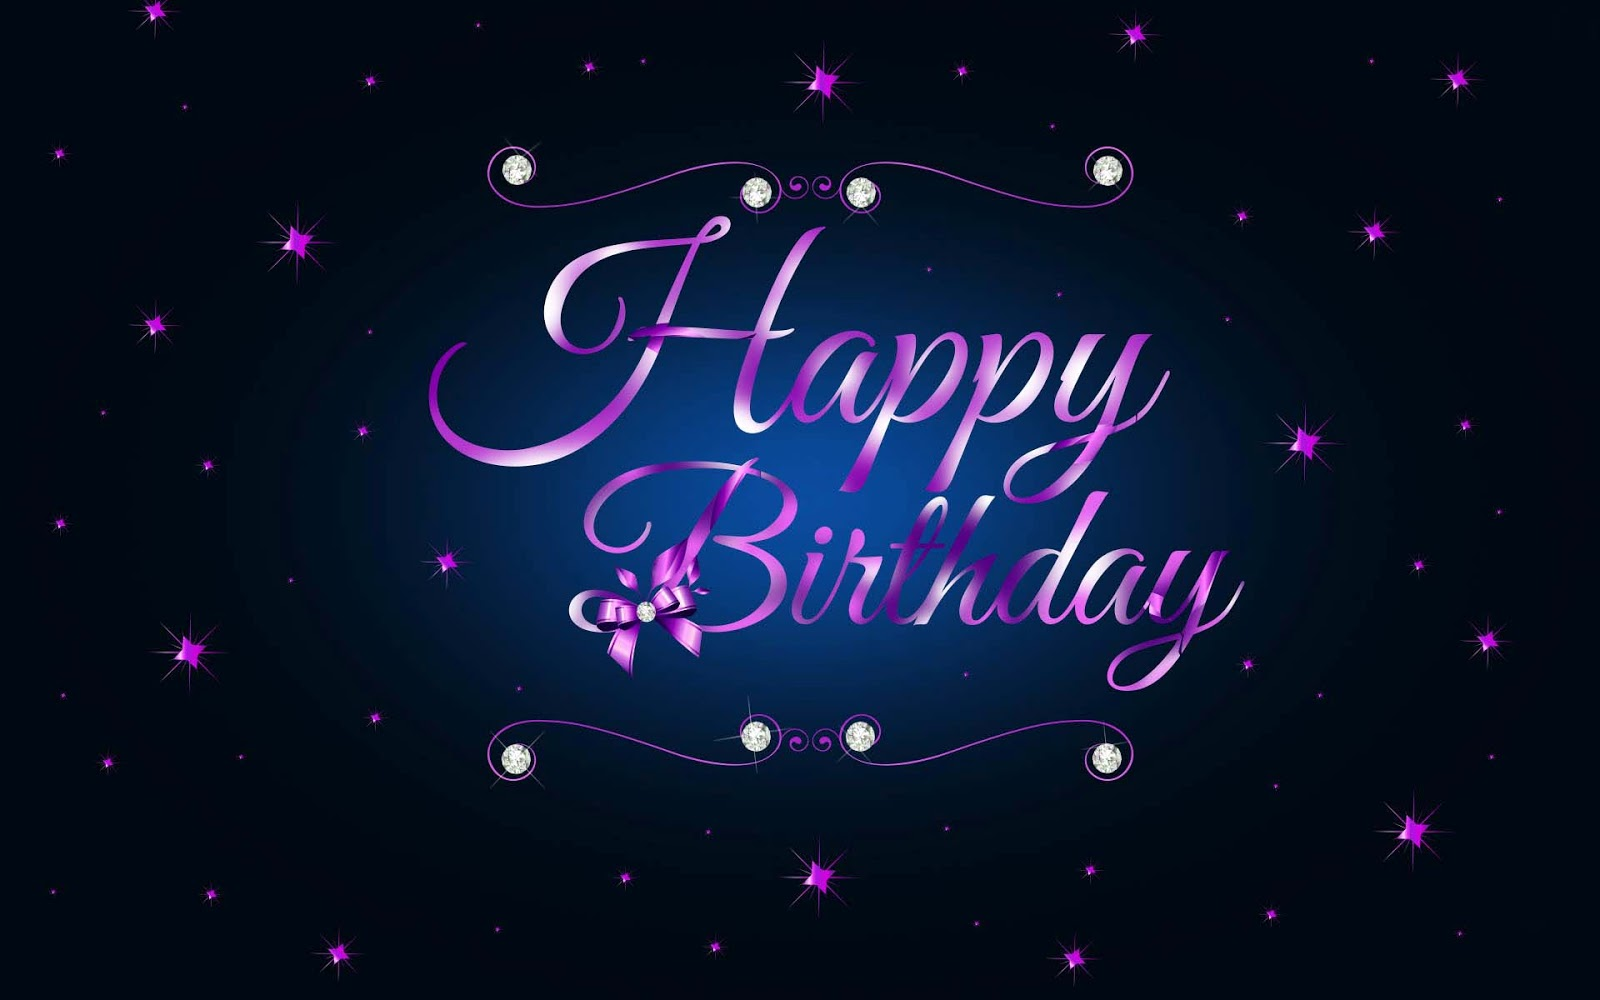 Happy-Birthday-Wishes-Greetings-Vector